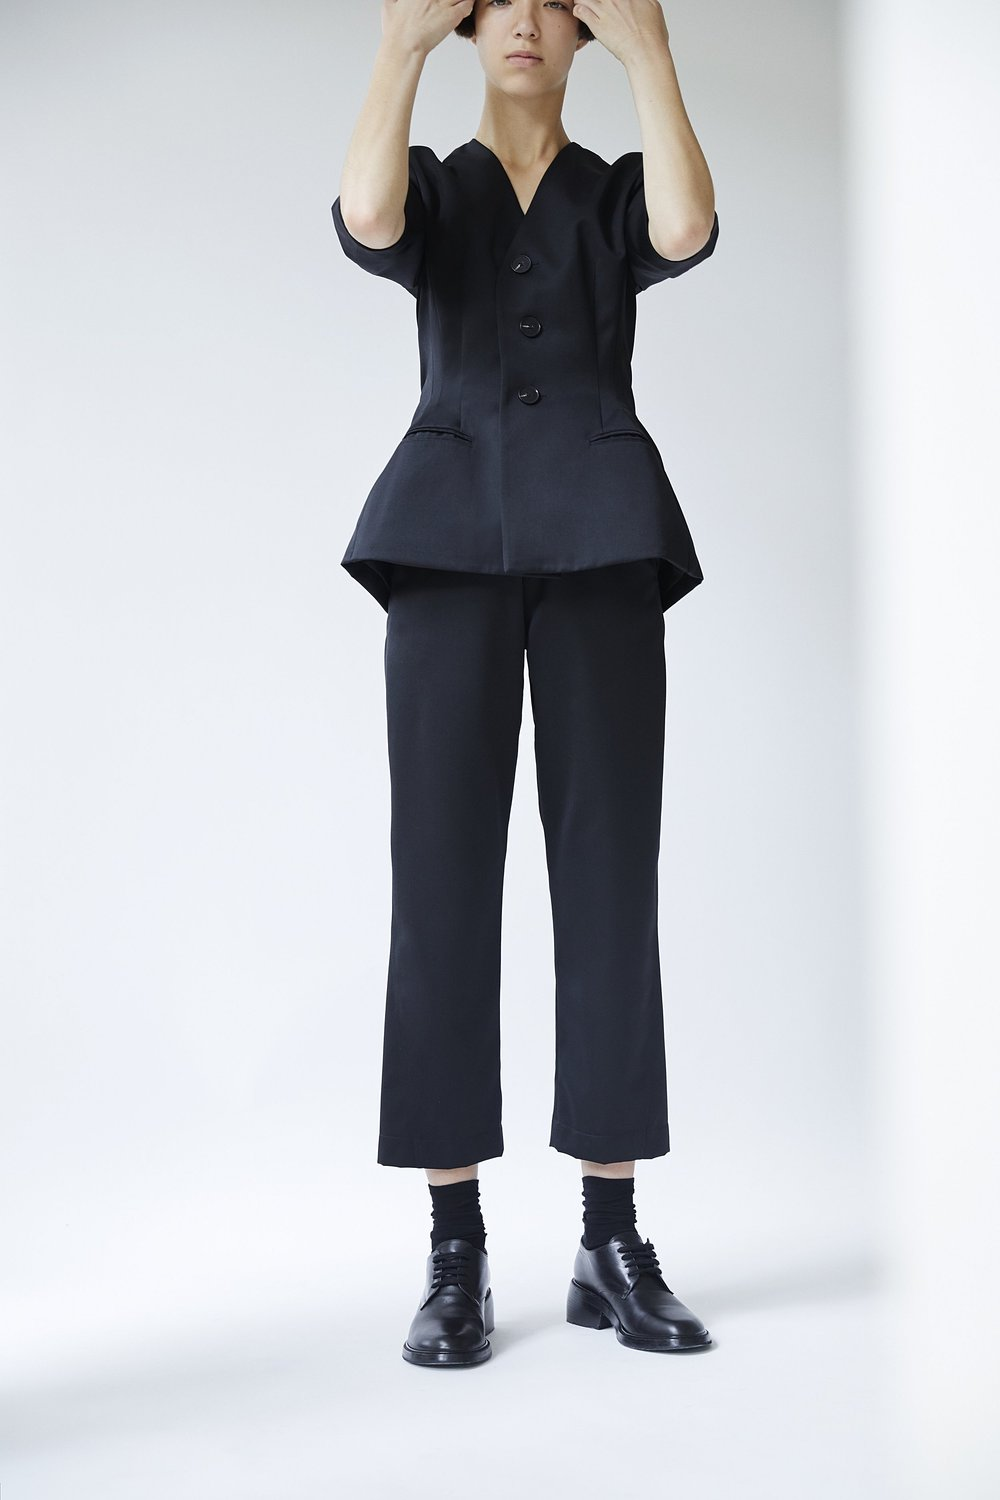 ARNE   cropped-sleeve jacket and   EVA   curved-seam trousers in BLACK